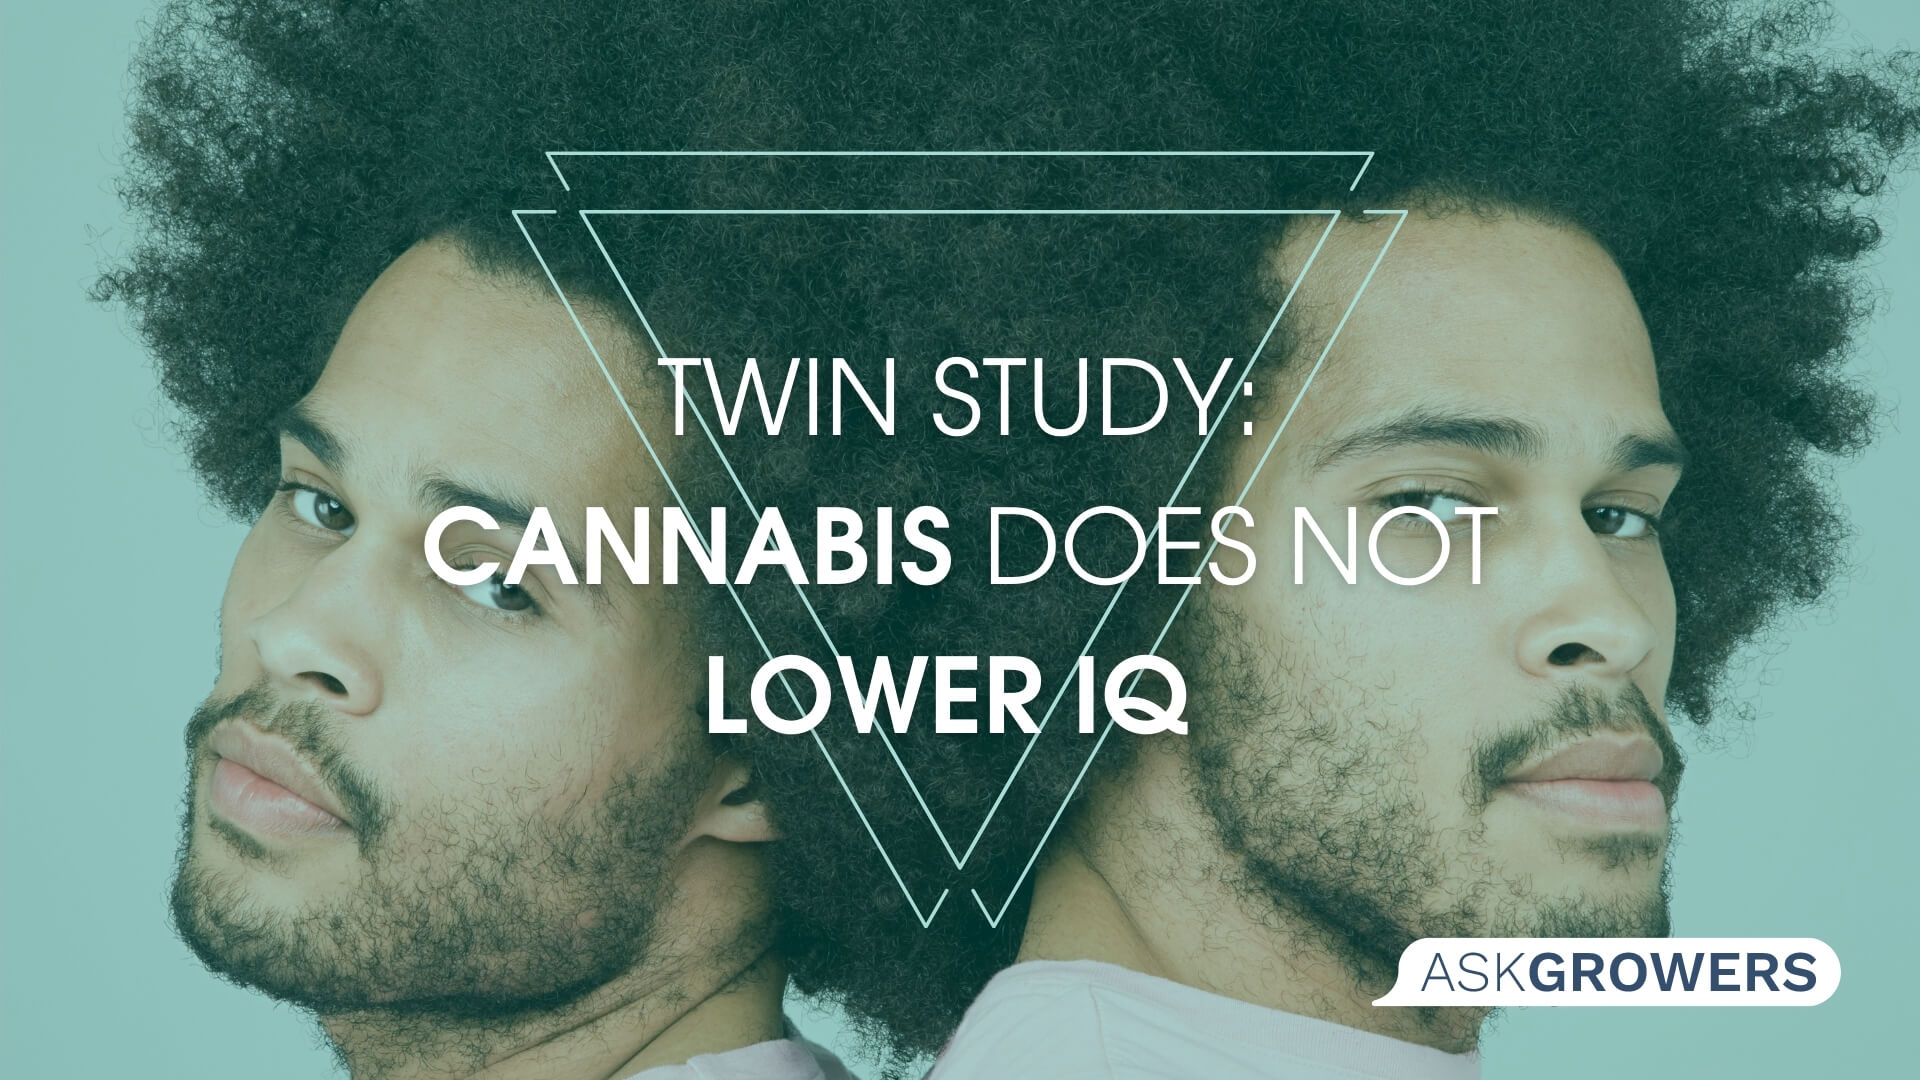 New Twin Study Confirms That Cannabis Does Not Lower IQ, AskGrowers